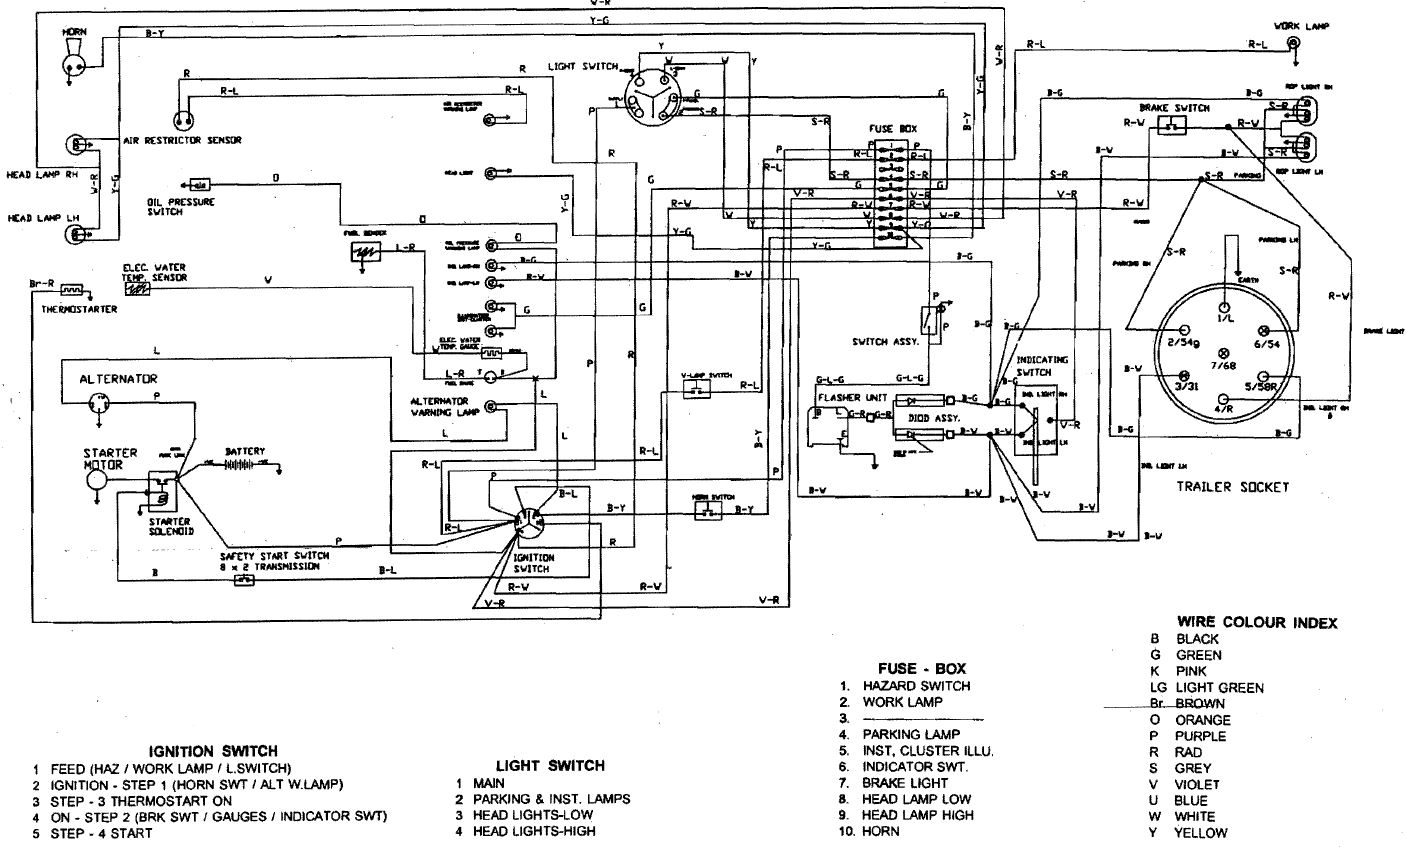 Ignition Switch Wiring Diagram Ford Diesel Tractor Wiring Diagram Tractor Wiring  Diagram